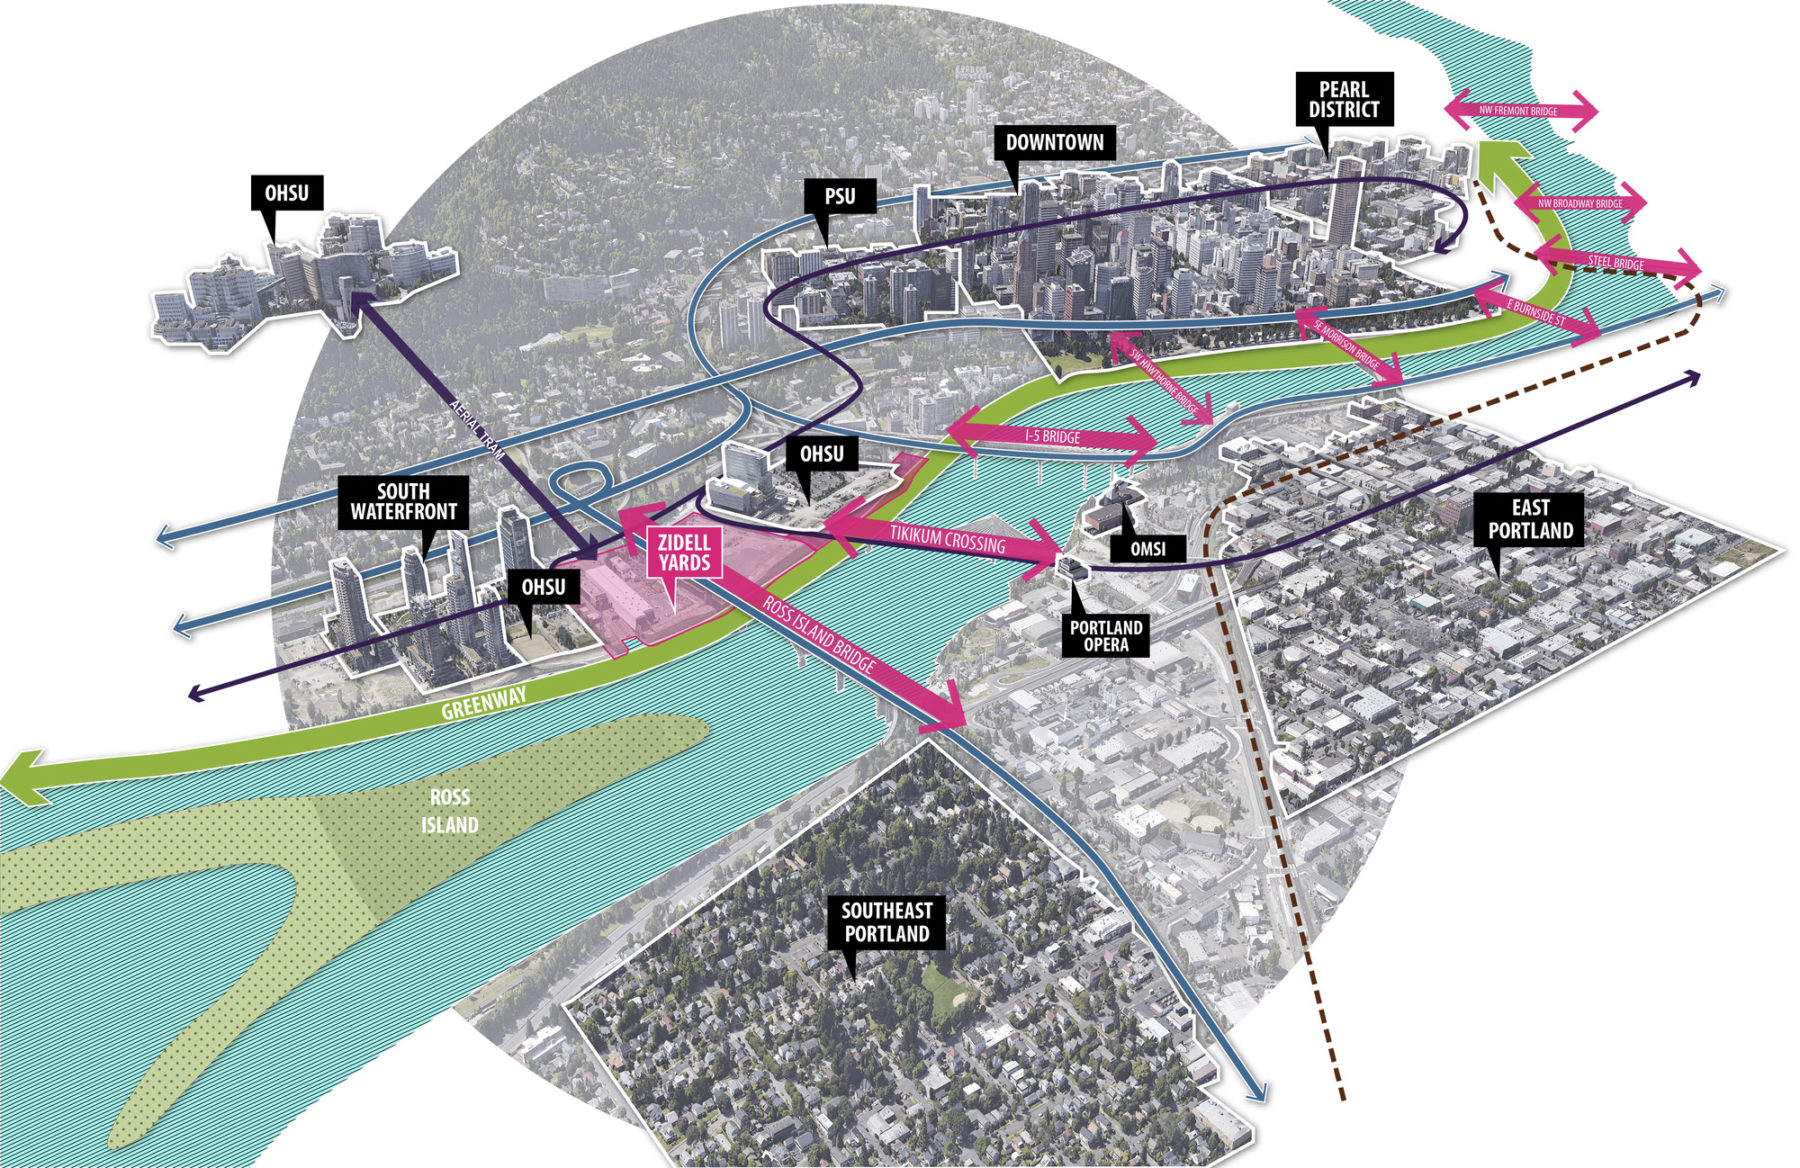 Diagram of key Portland landmarks and bridges in proximity to Zidell Yards site